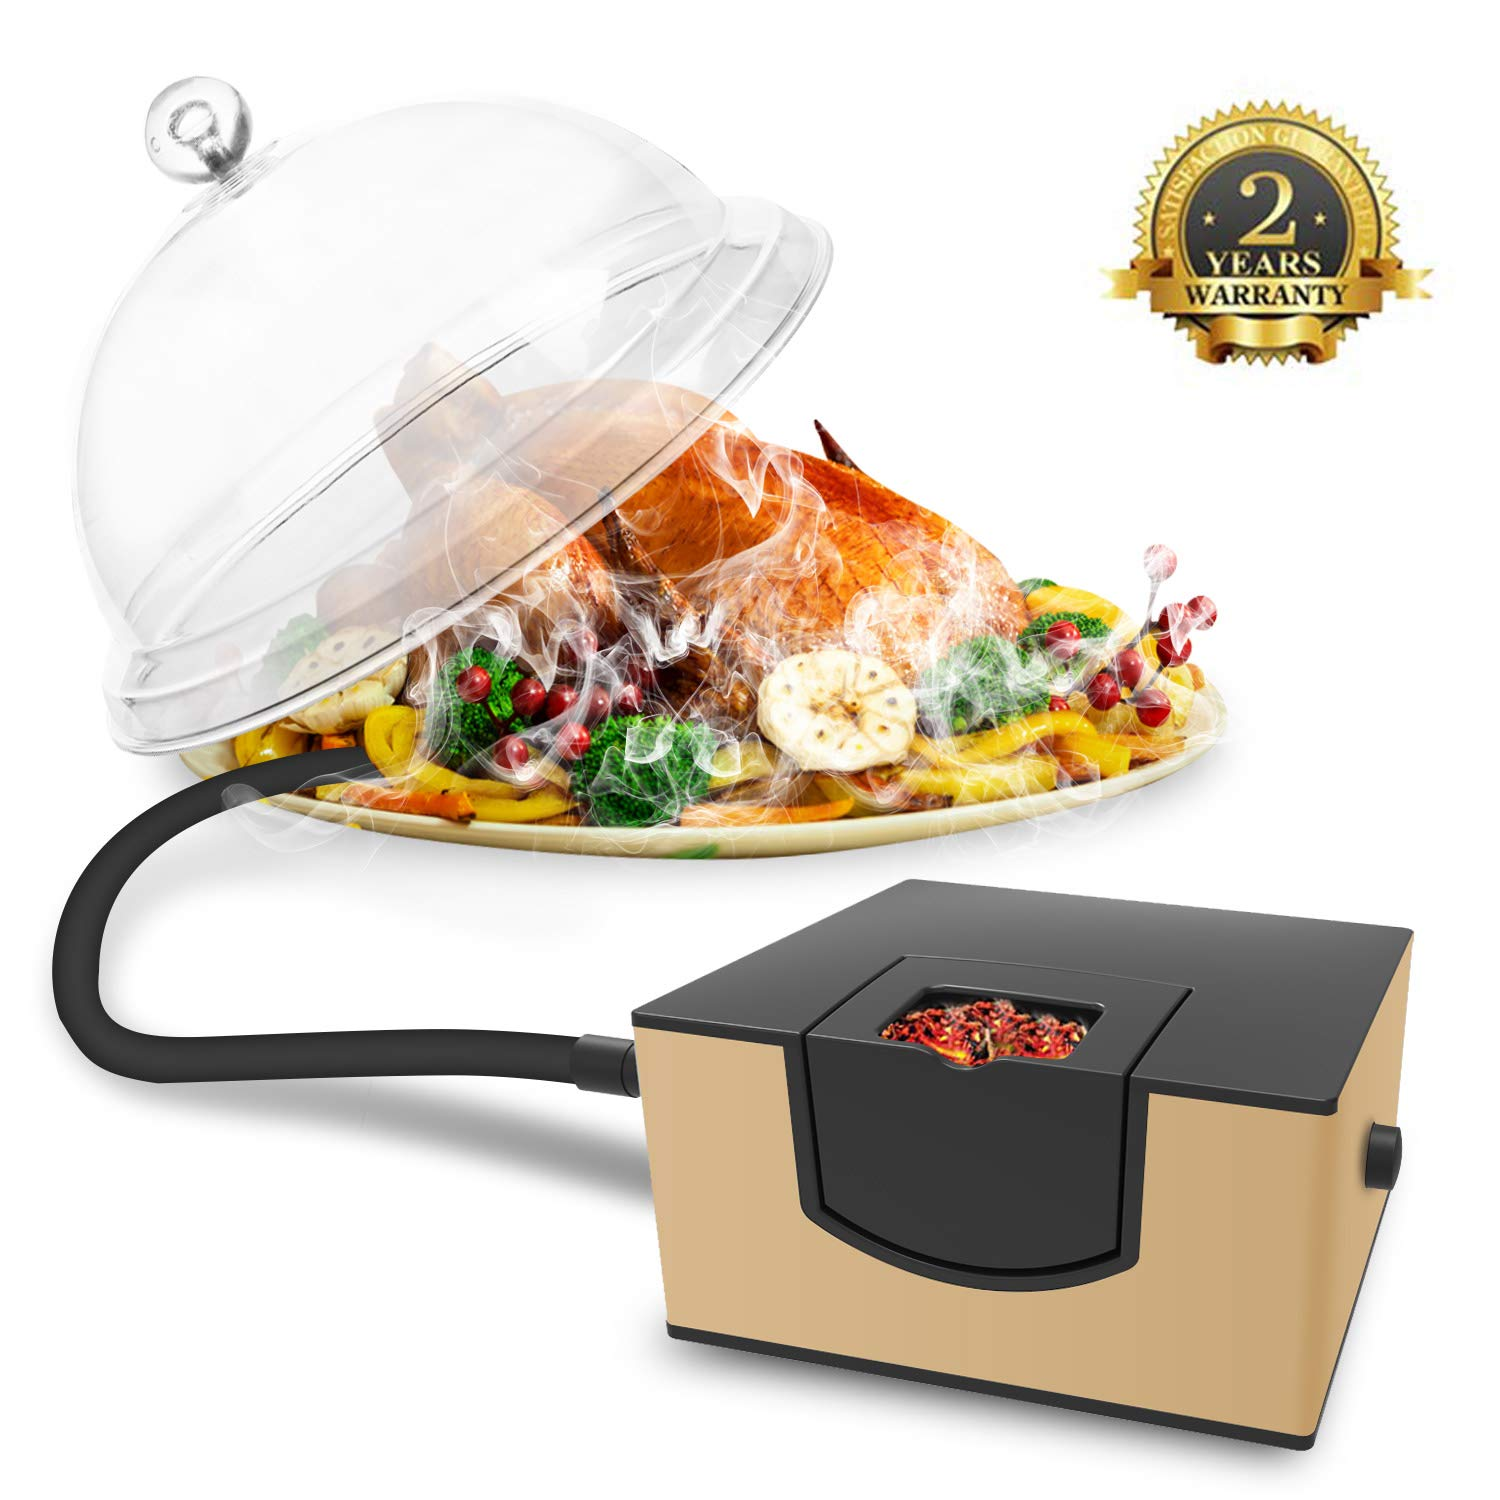 Kaven Smoking Gun Handheld Smoker Food Smoker For Meat, Veggies, BBQ, Sous Vide, Fruit, Cocktail,Cheese(Gold)